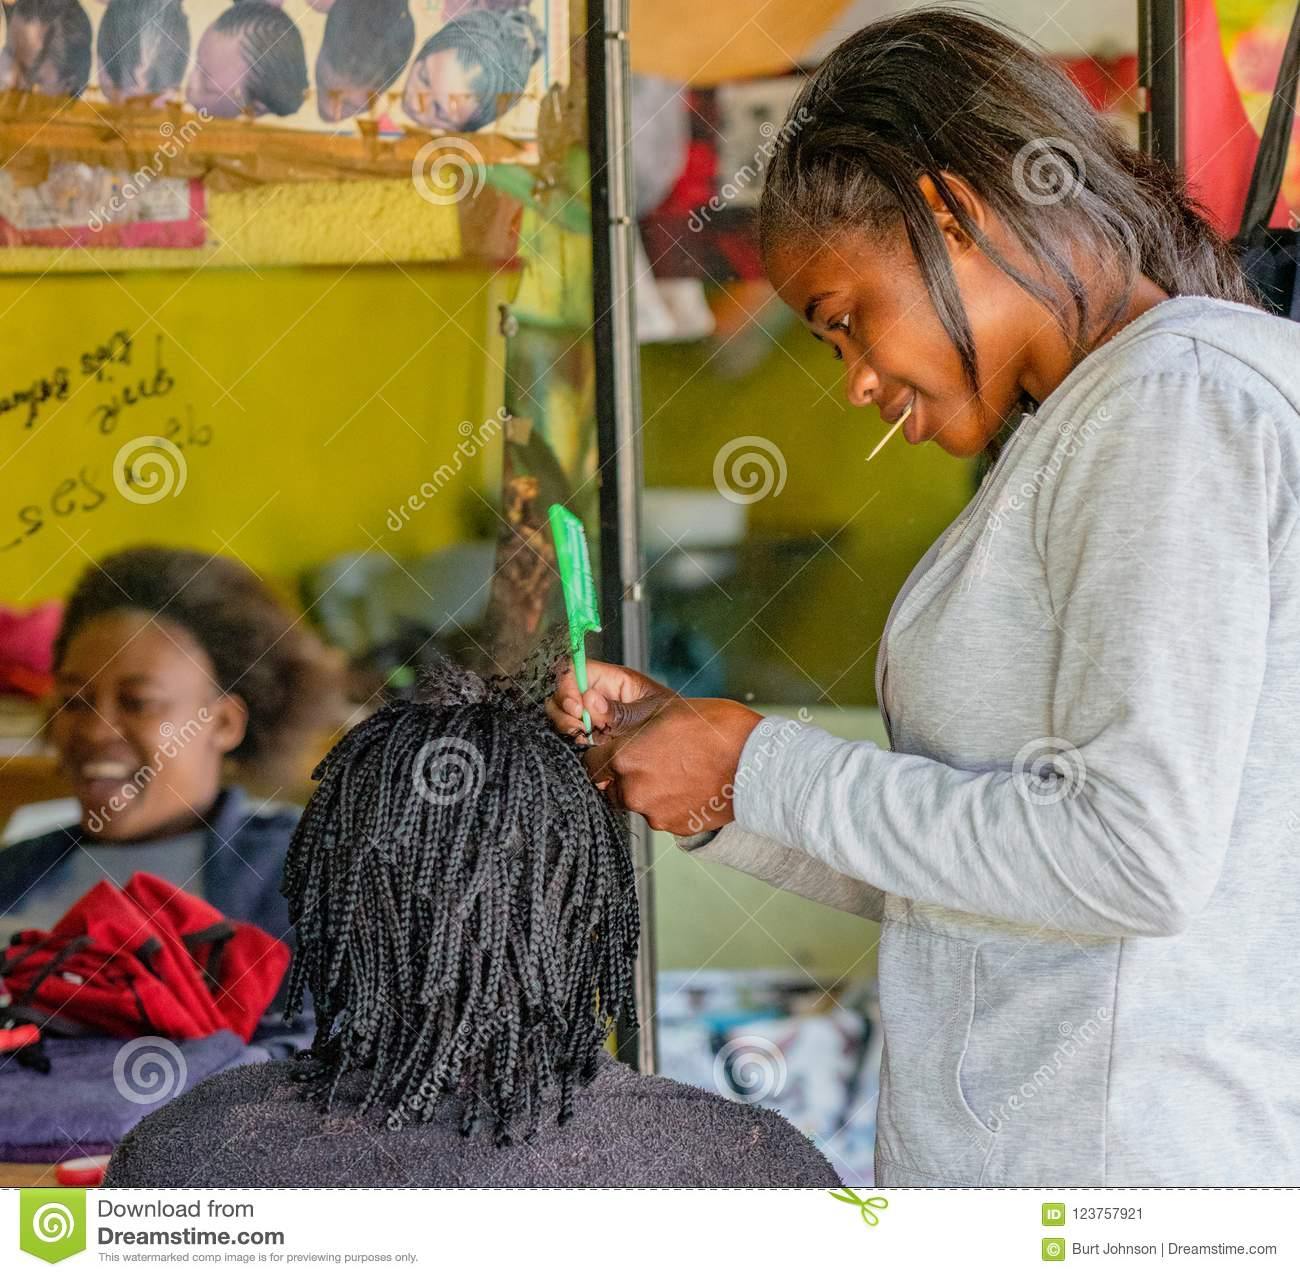 Windhoek South Africa July 6 2018 A Hair Stylist Works On A